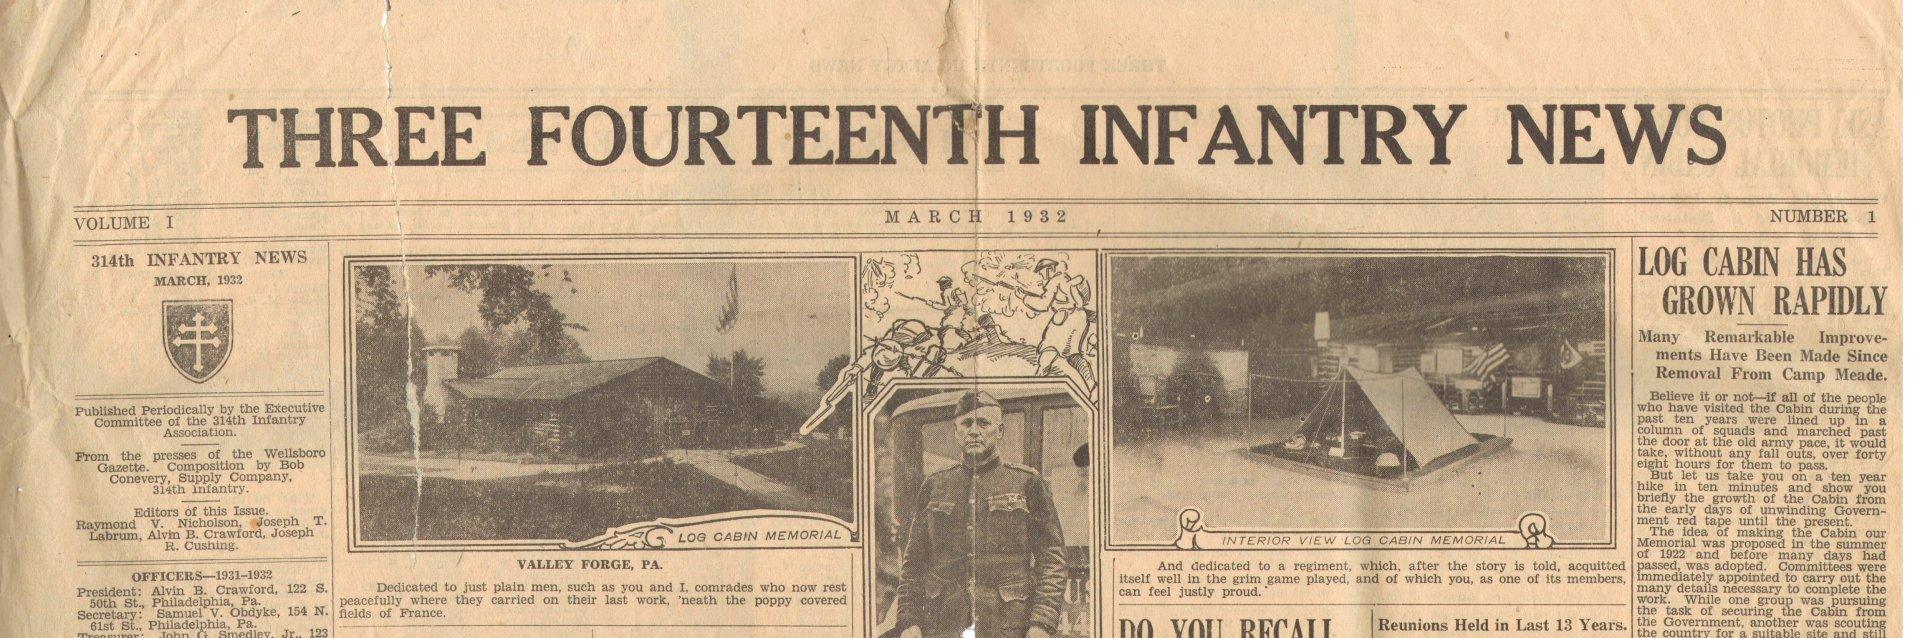 314th Infantry News Newspaper - March 1932 - masthead